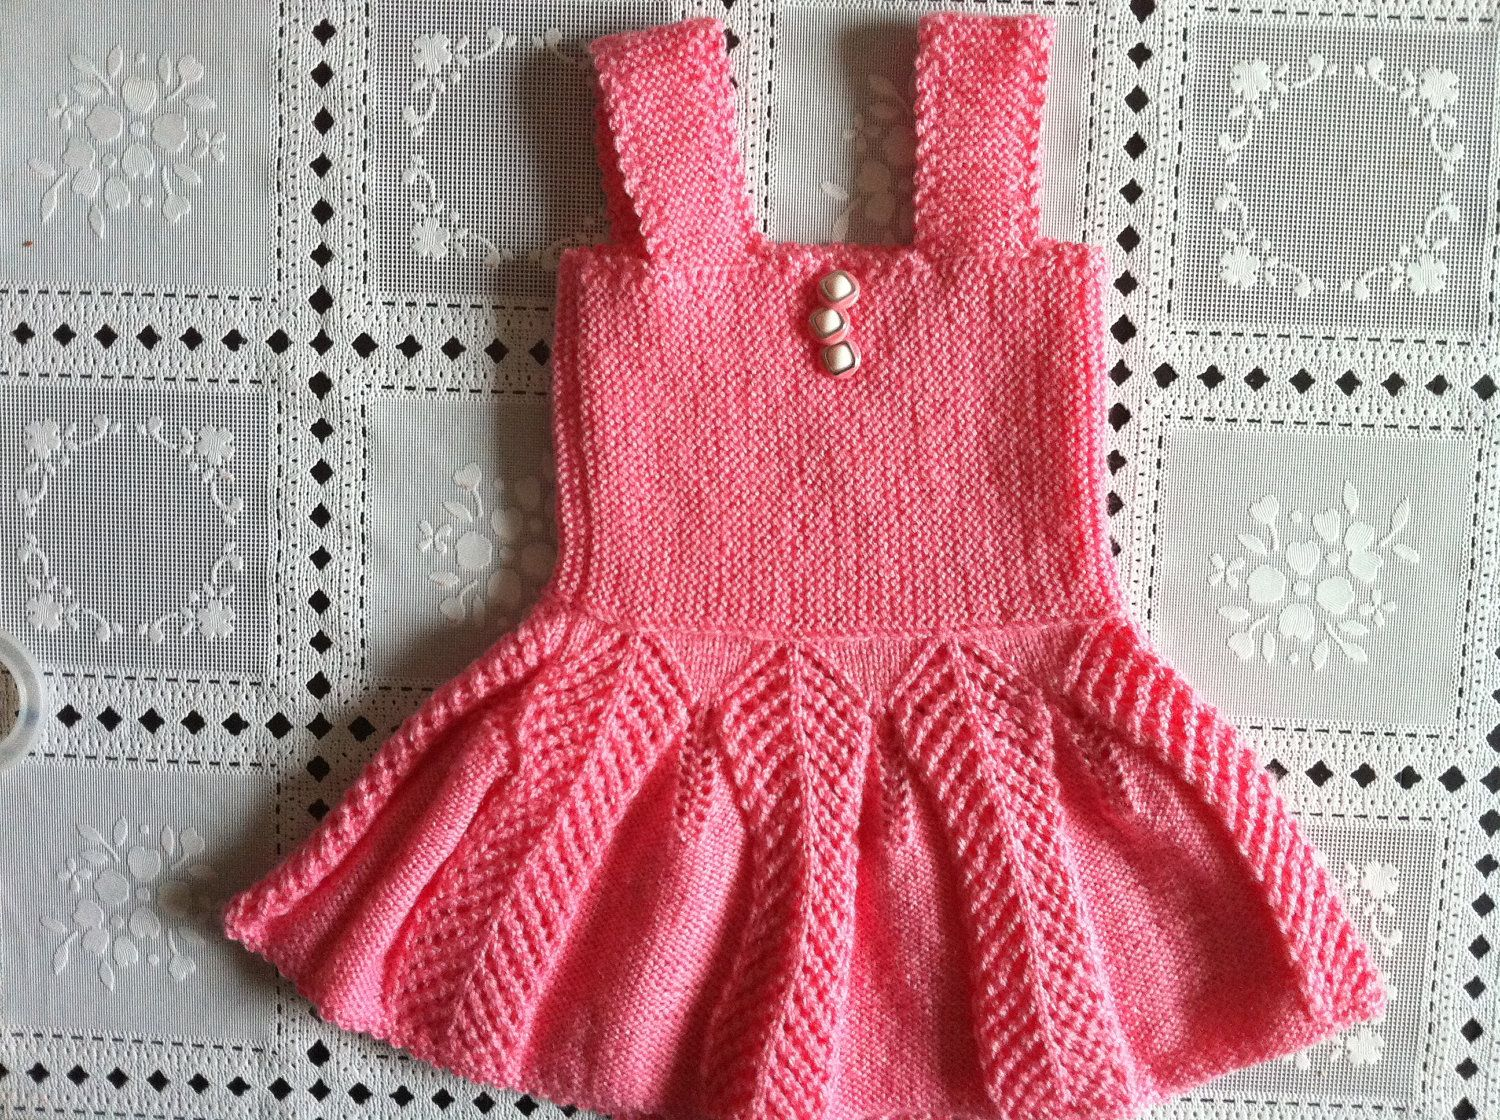 c32f1fe86 hand knit baby clothes - Google Search | Baby Clothes